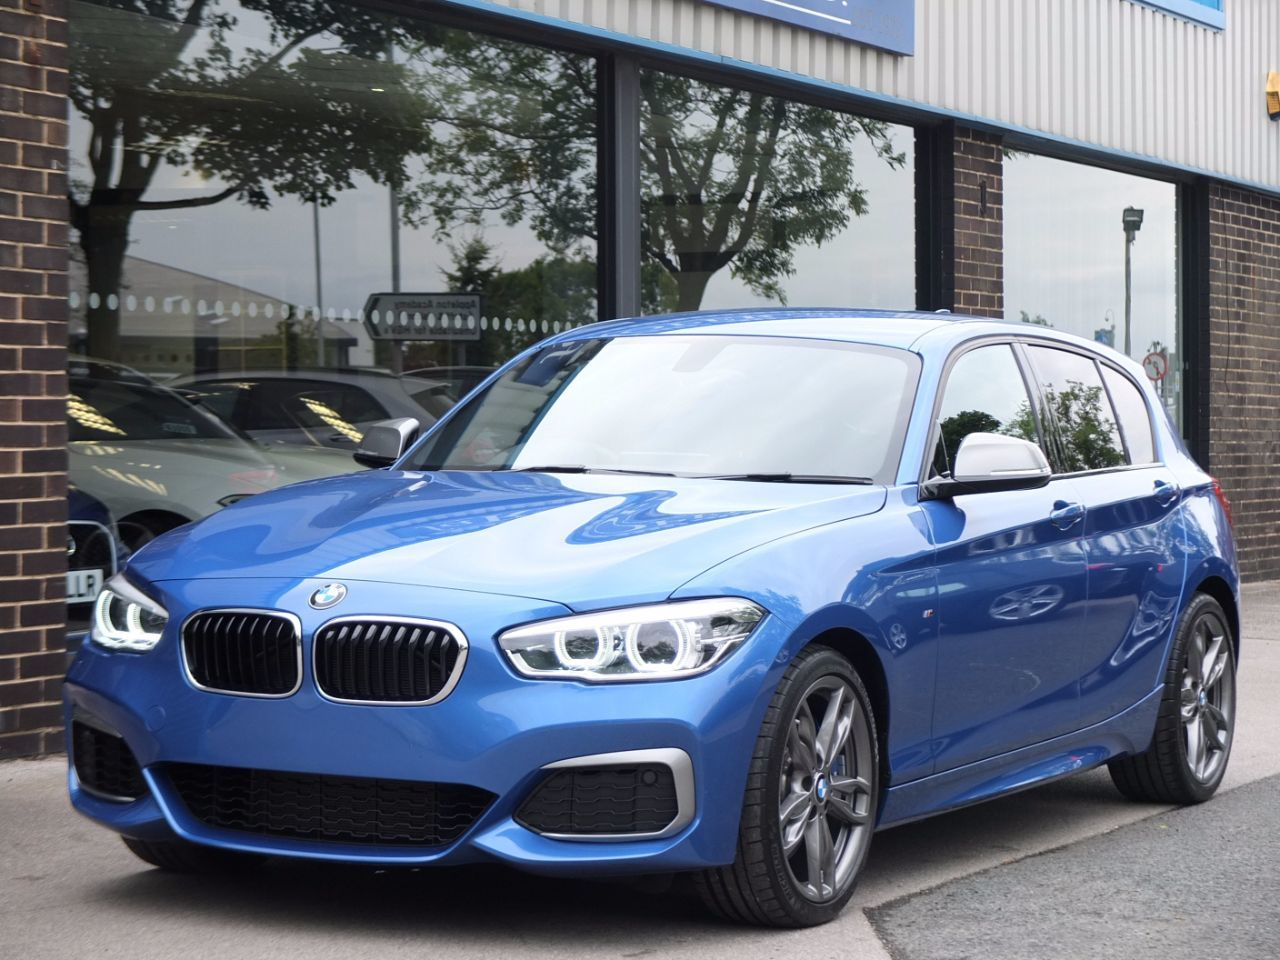 BMW 1 Series 3.0 M140i 5 door 340ps Auto Hatchback Petrol Estoril Blue MetallicBMW 1 Series 3.0 M140i 5 door 340ps Auto Hatchback Petrol Estoril Blue Metallic at fa Roper Ltd Bradford